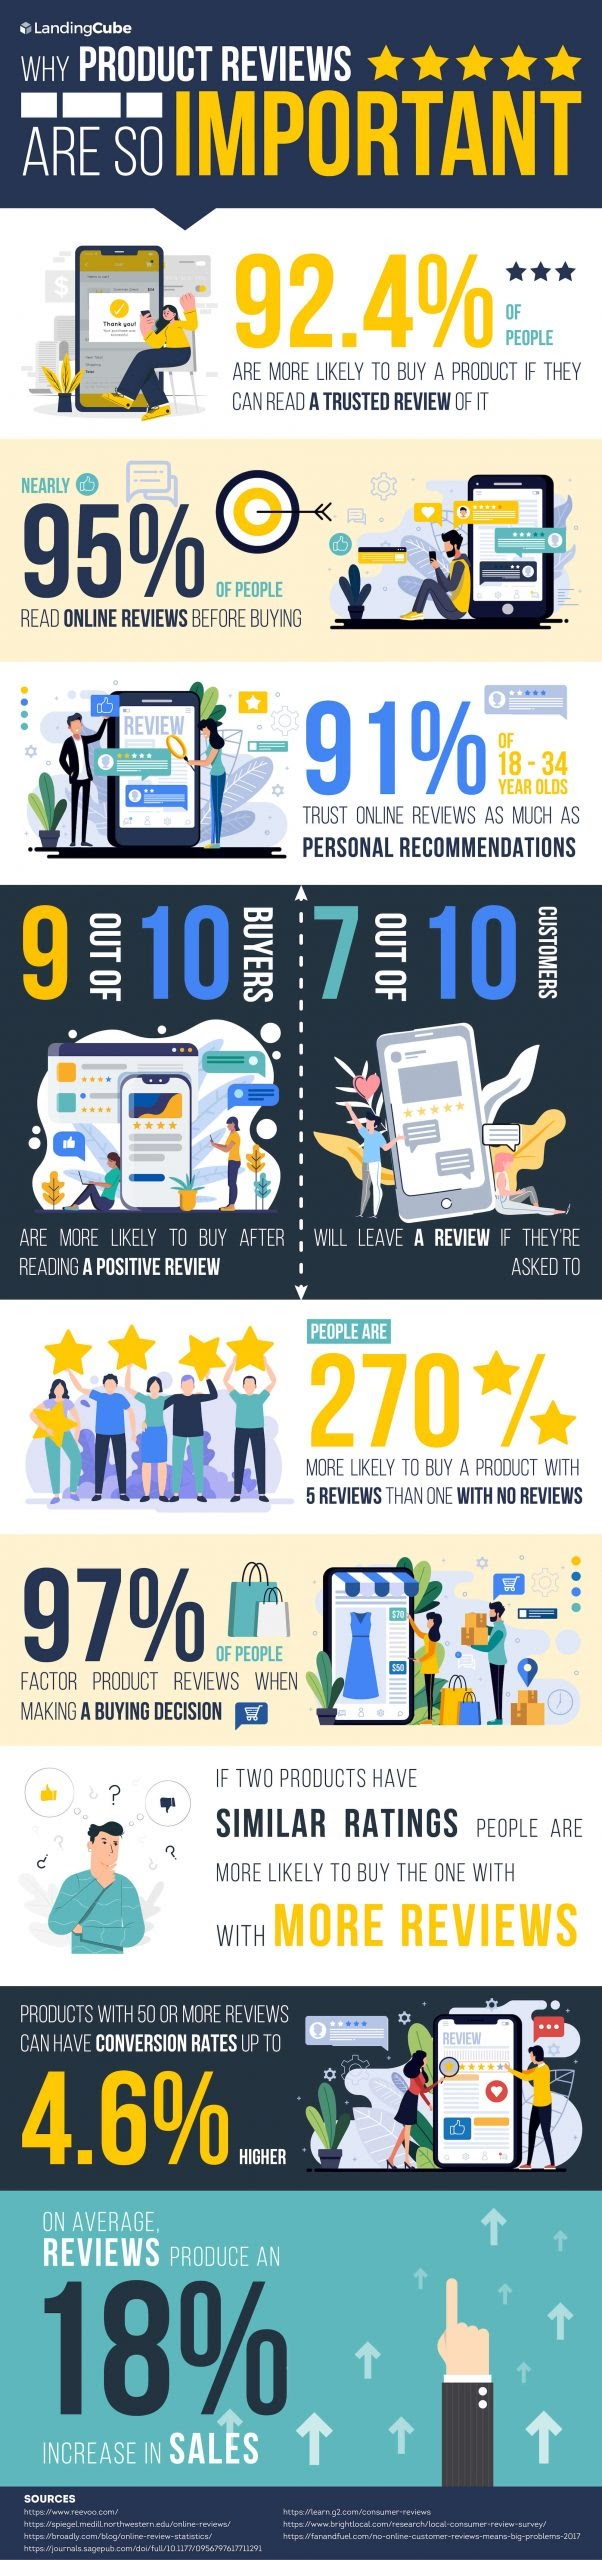 How to Get Reviews on Amazon in 2020 #infographic